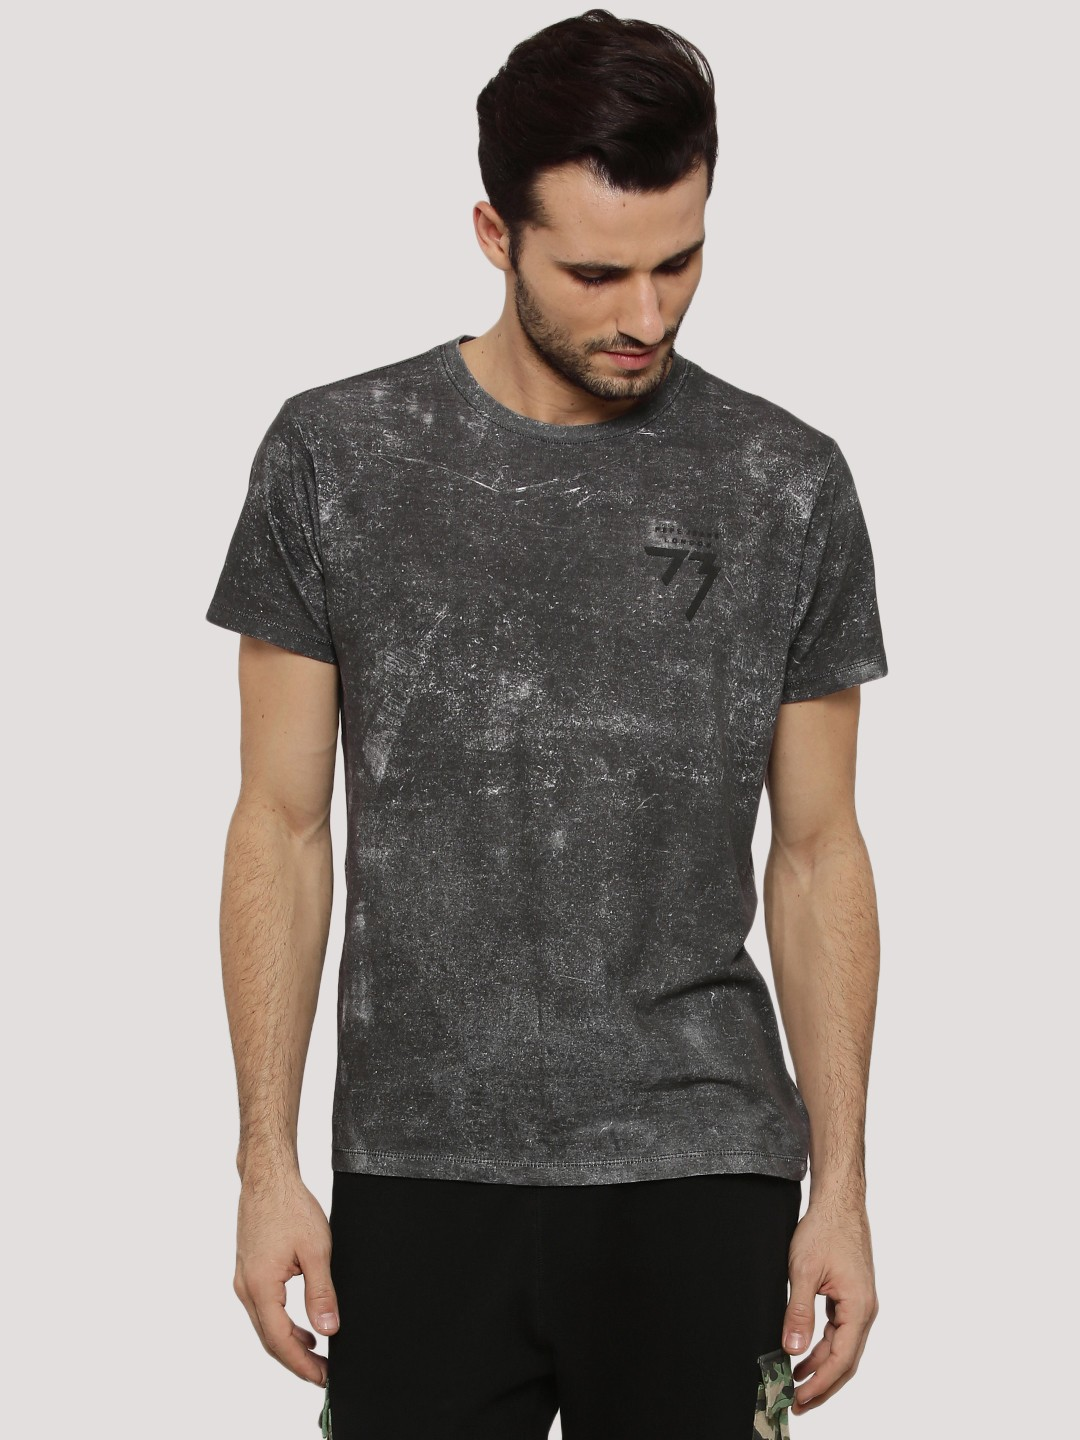 Buy PEPE JEANS Oil Washed T-Shirt For Men - Men's Black T-shirts ...